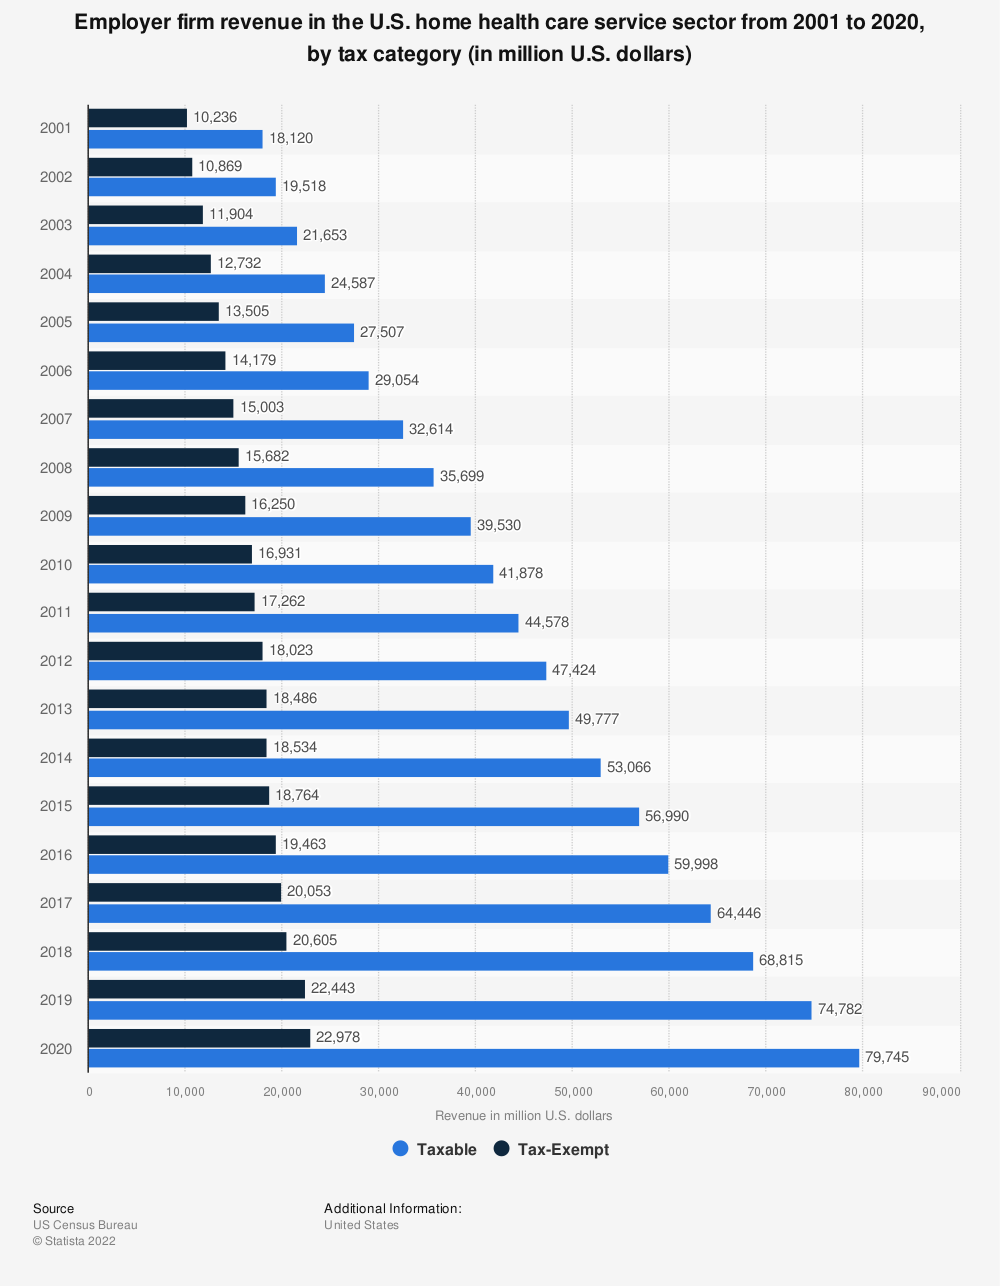 Statistic: Employer firm revenue in the U.S. home health care service sector from 2001 to 2018, by tax category (in million U.S. dollars) | Statista